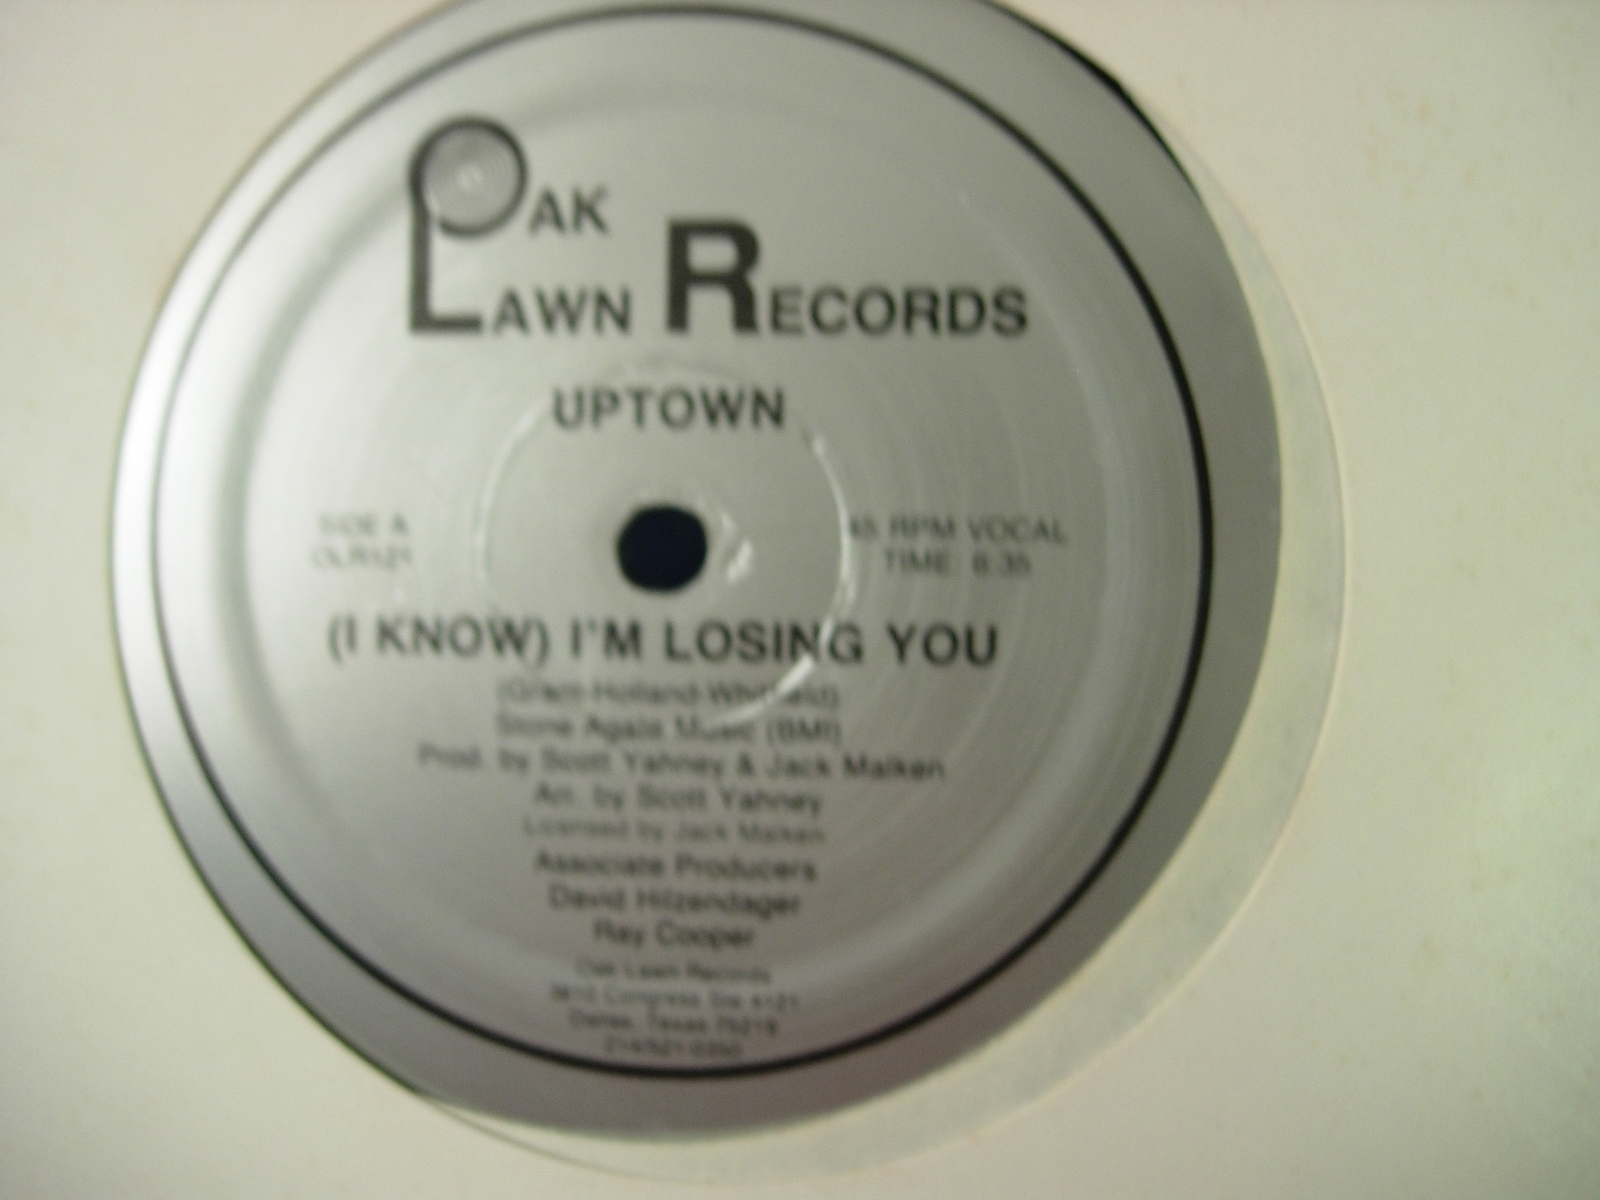 "Uptown - (I Know) I'm Losing You - Oak Lawn Records 121 - 12"" Single - 45RPM"